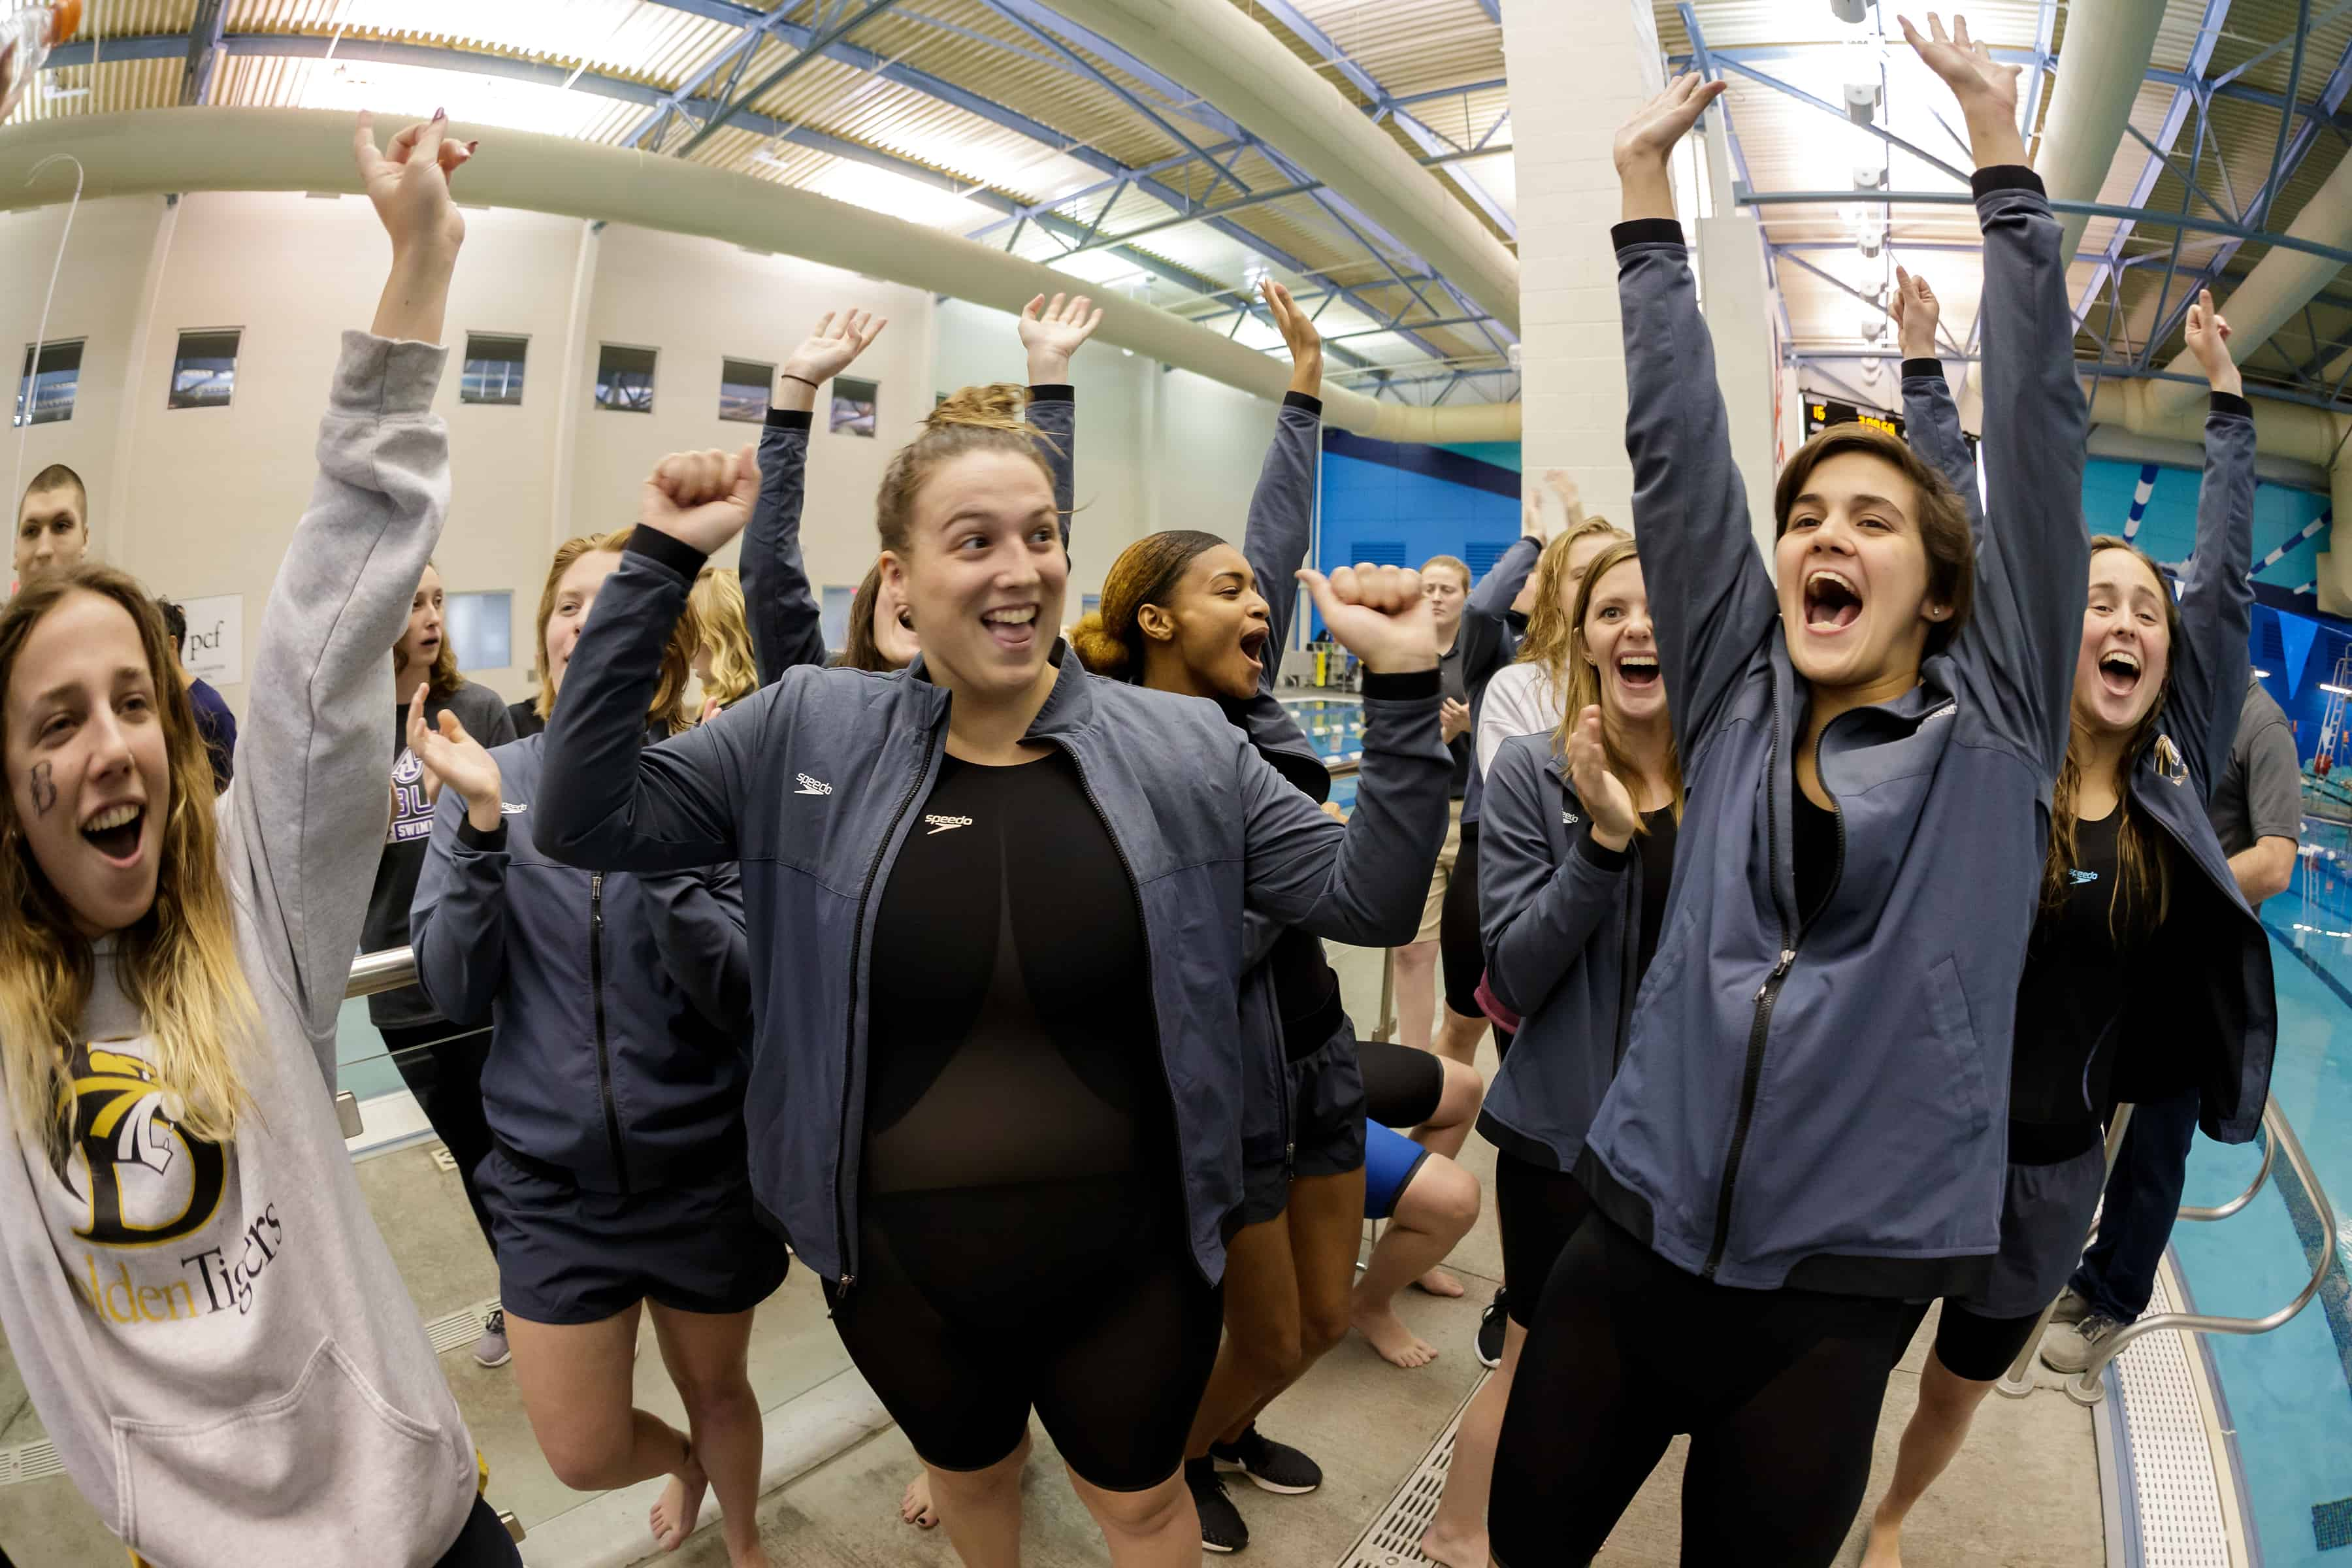 Brenau swimmers celebrate after winning the Appalachian Athletic Conference Swimming & Diving Championship Meet on Saturday, Feb. 9, 2019 in Kingsport, Tenn. Brenau won the meet and are Appalachian Athletic Conference Champions for the second straight year. (AJ Reynolds/Brenau University)